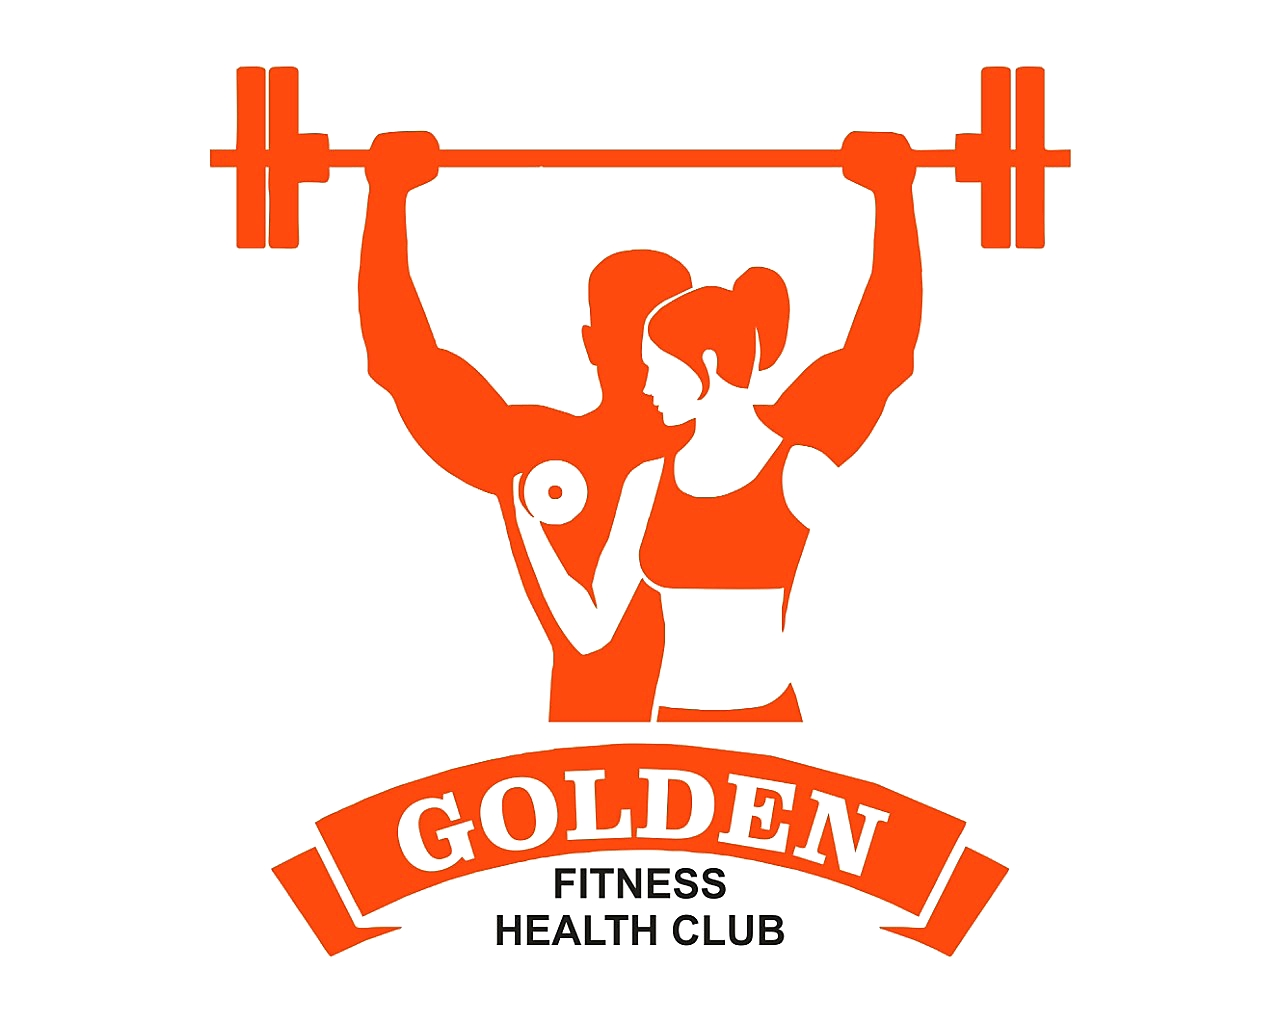 Shree Jay Golden Fitness Health Club